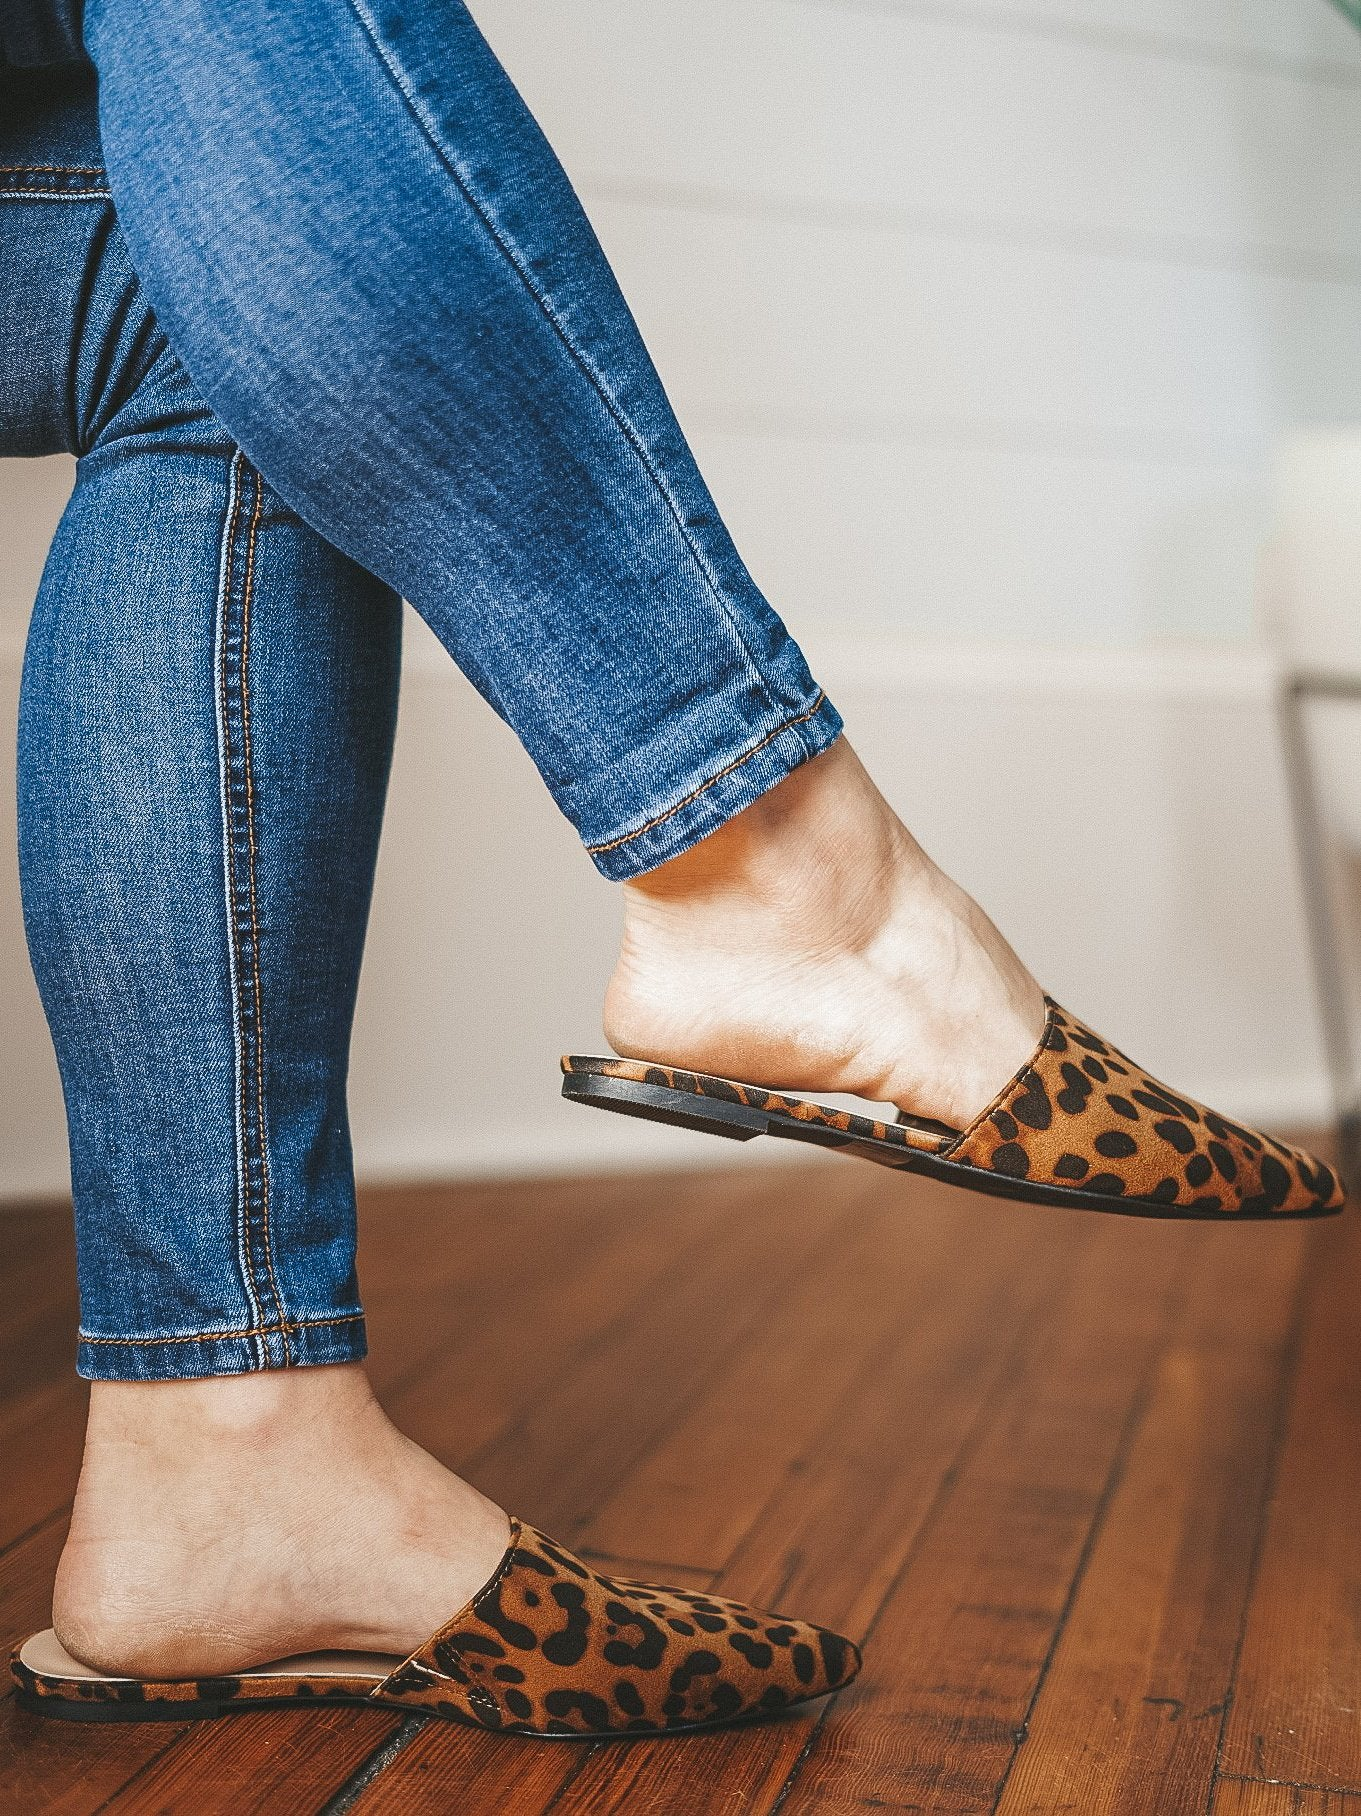 You're A Wild One Flats - Leopard